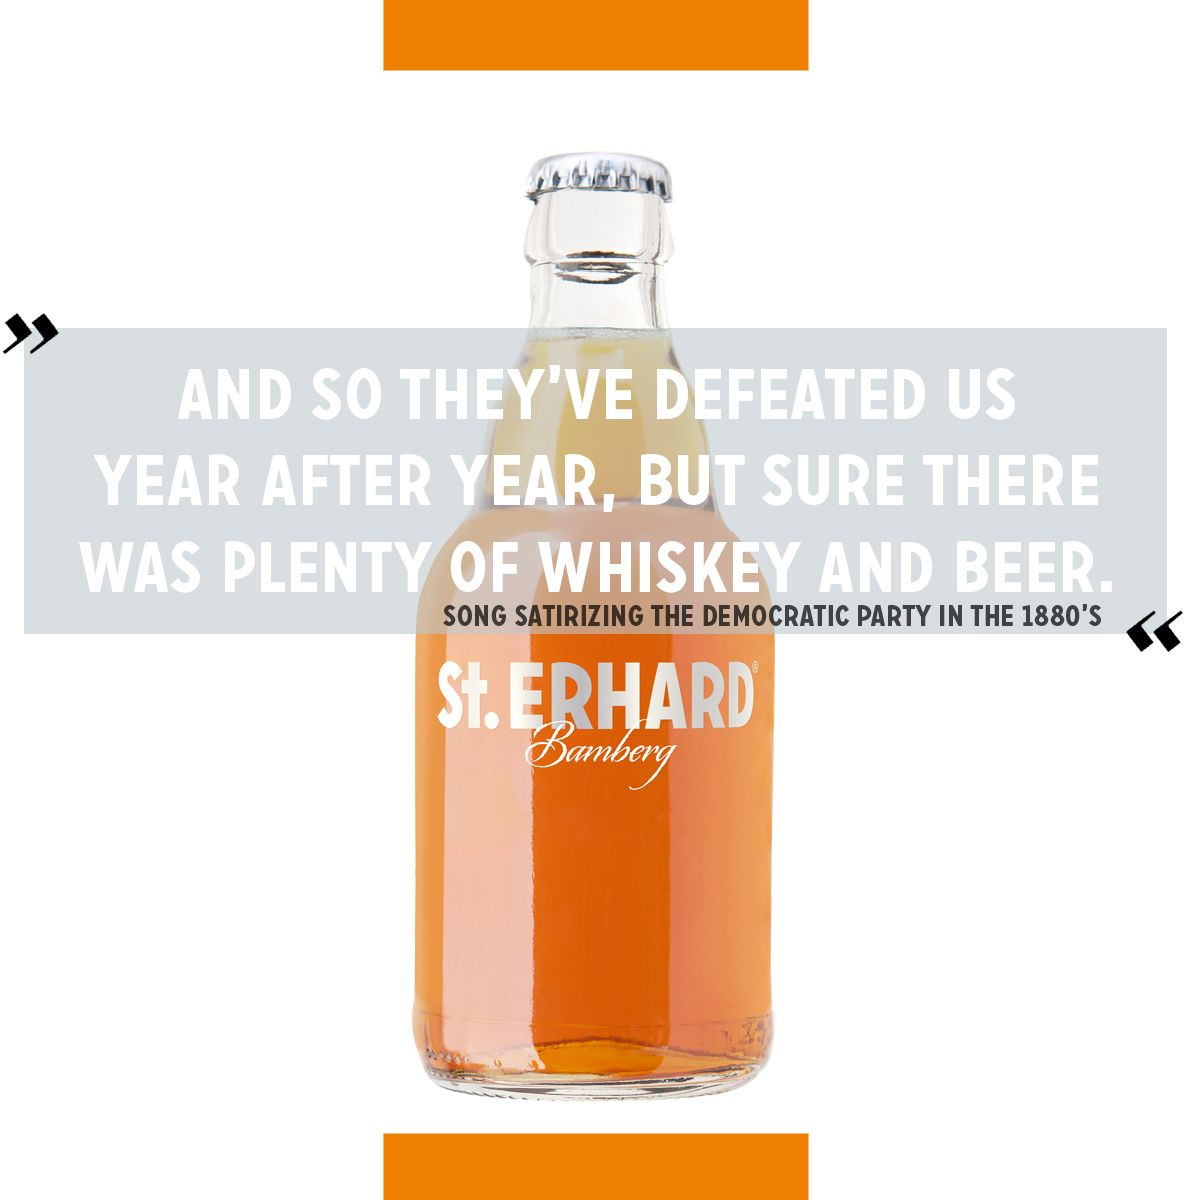 """Beer Quote of the Day: """"And so they've defeated us year after year, but sure there was plenty of whiskey and beer."""" - Song satirizing the Democratic Party in the 1880's"""